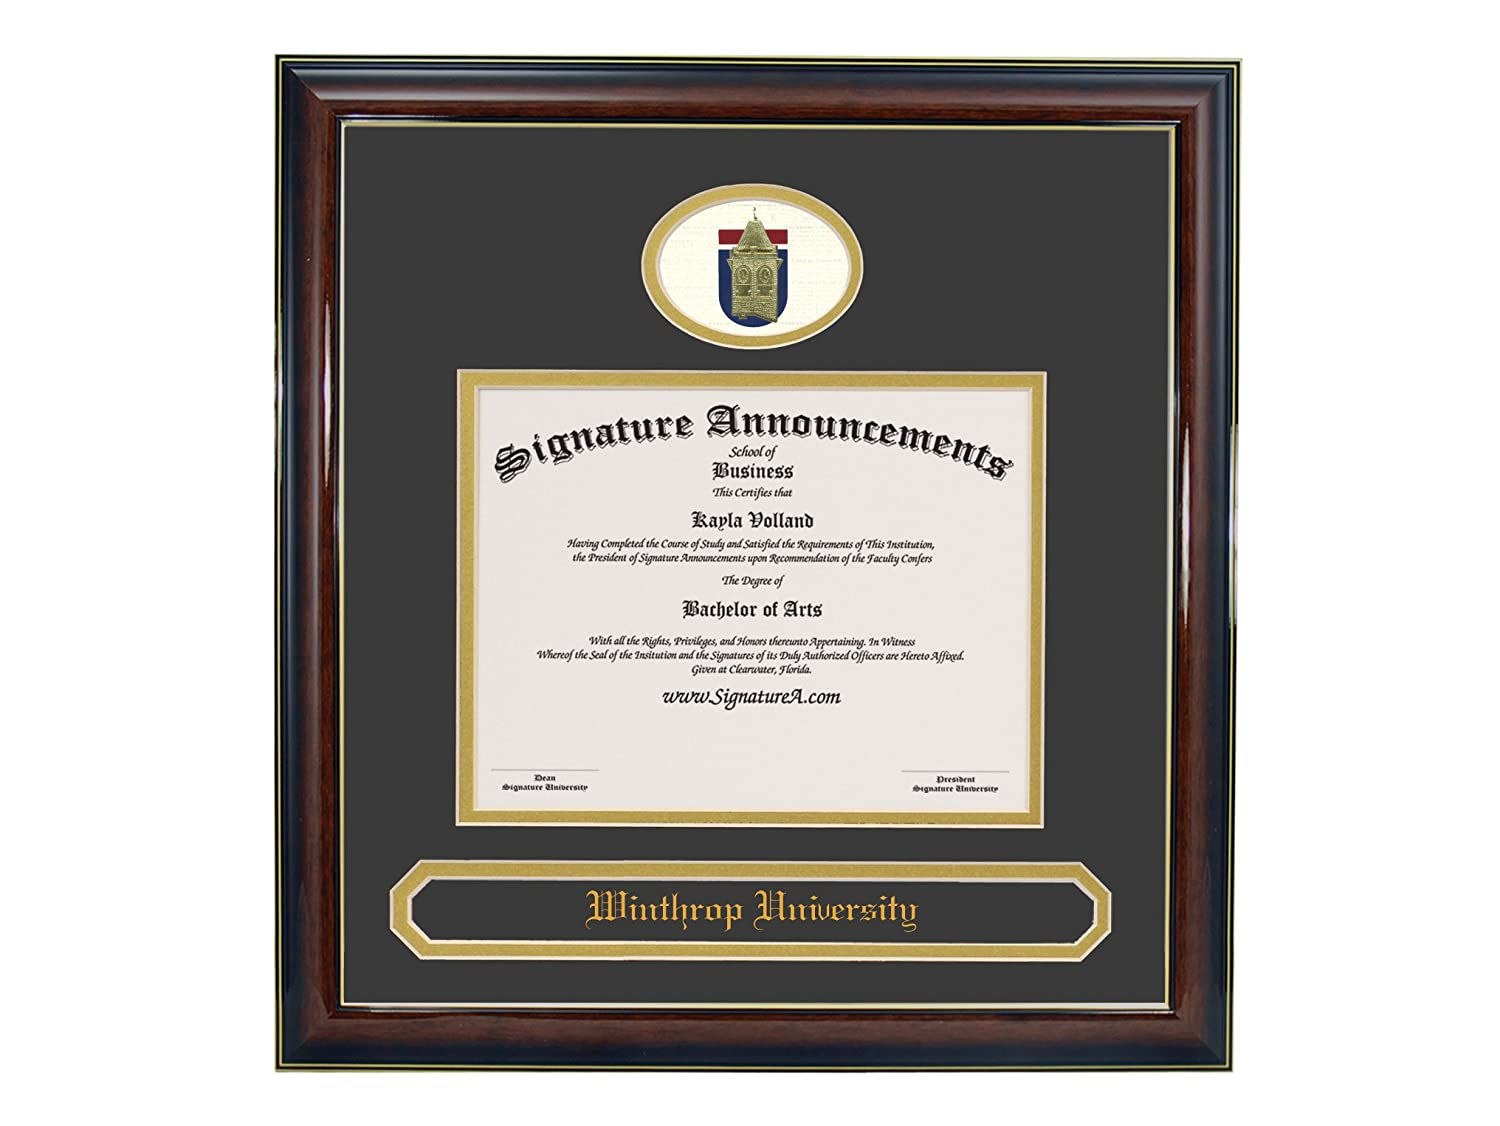 Signature Announcements Winthrop-University Undergraduate Professional//Doctor Sculpted Foil Seal /& Name Graduation Diploma Frame 16 x 16 Gold Accent Gloss Mahogany